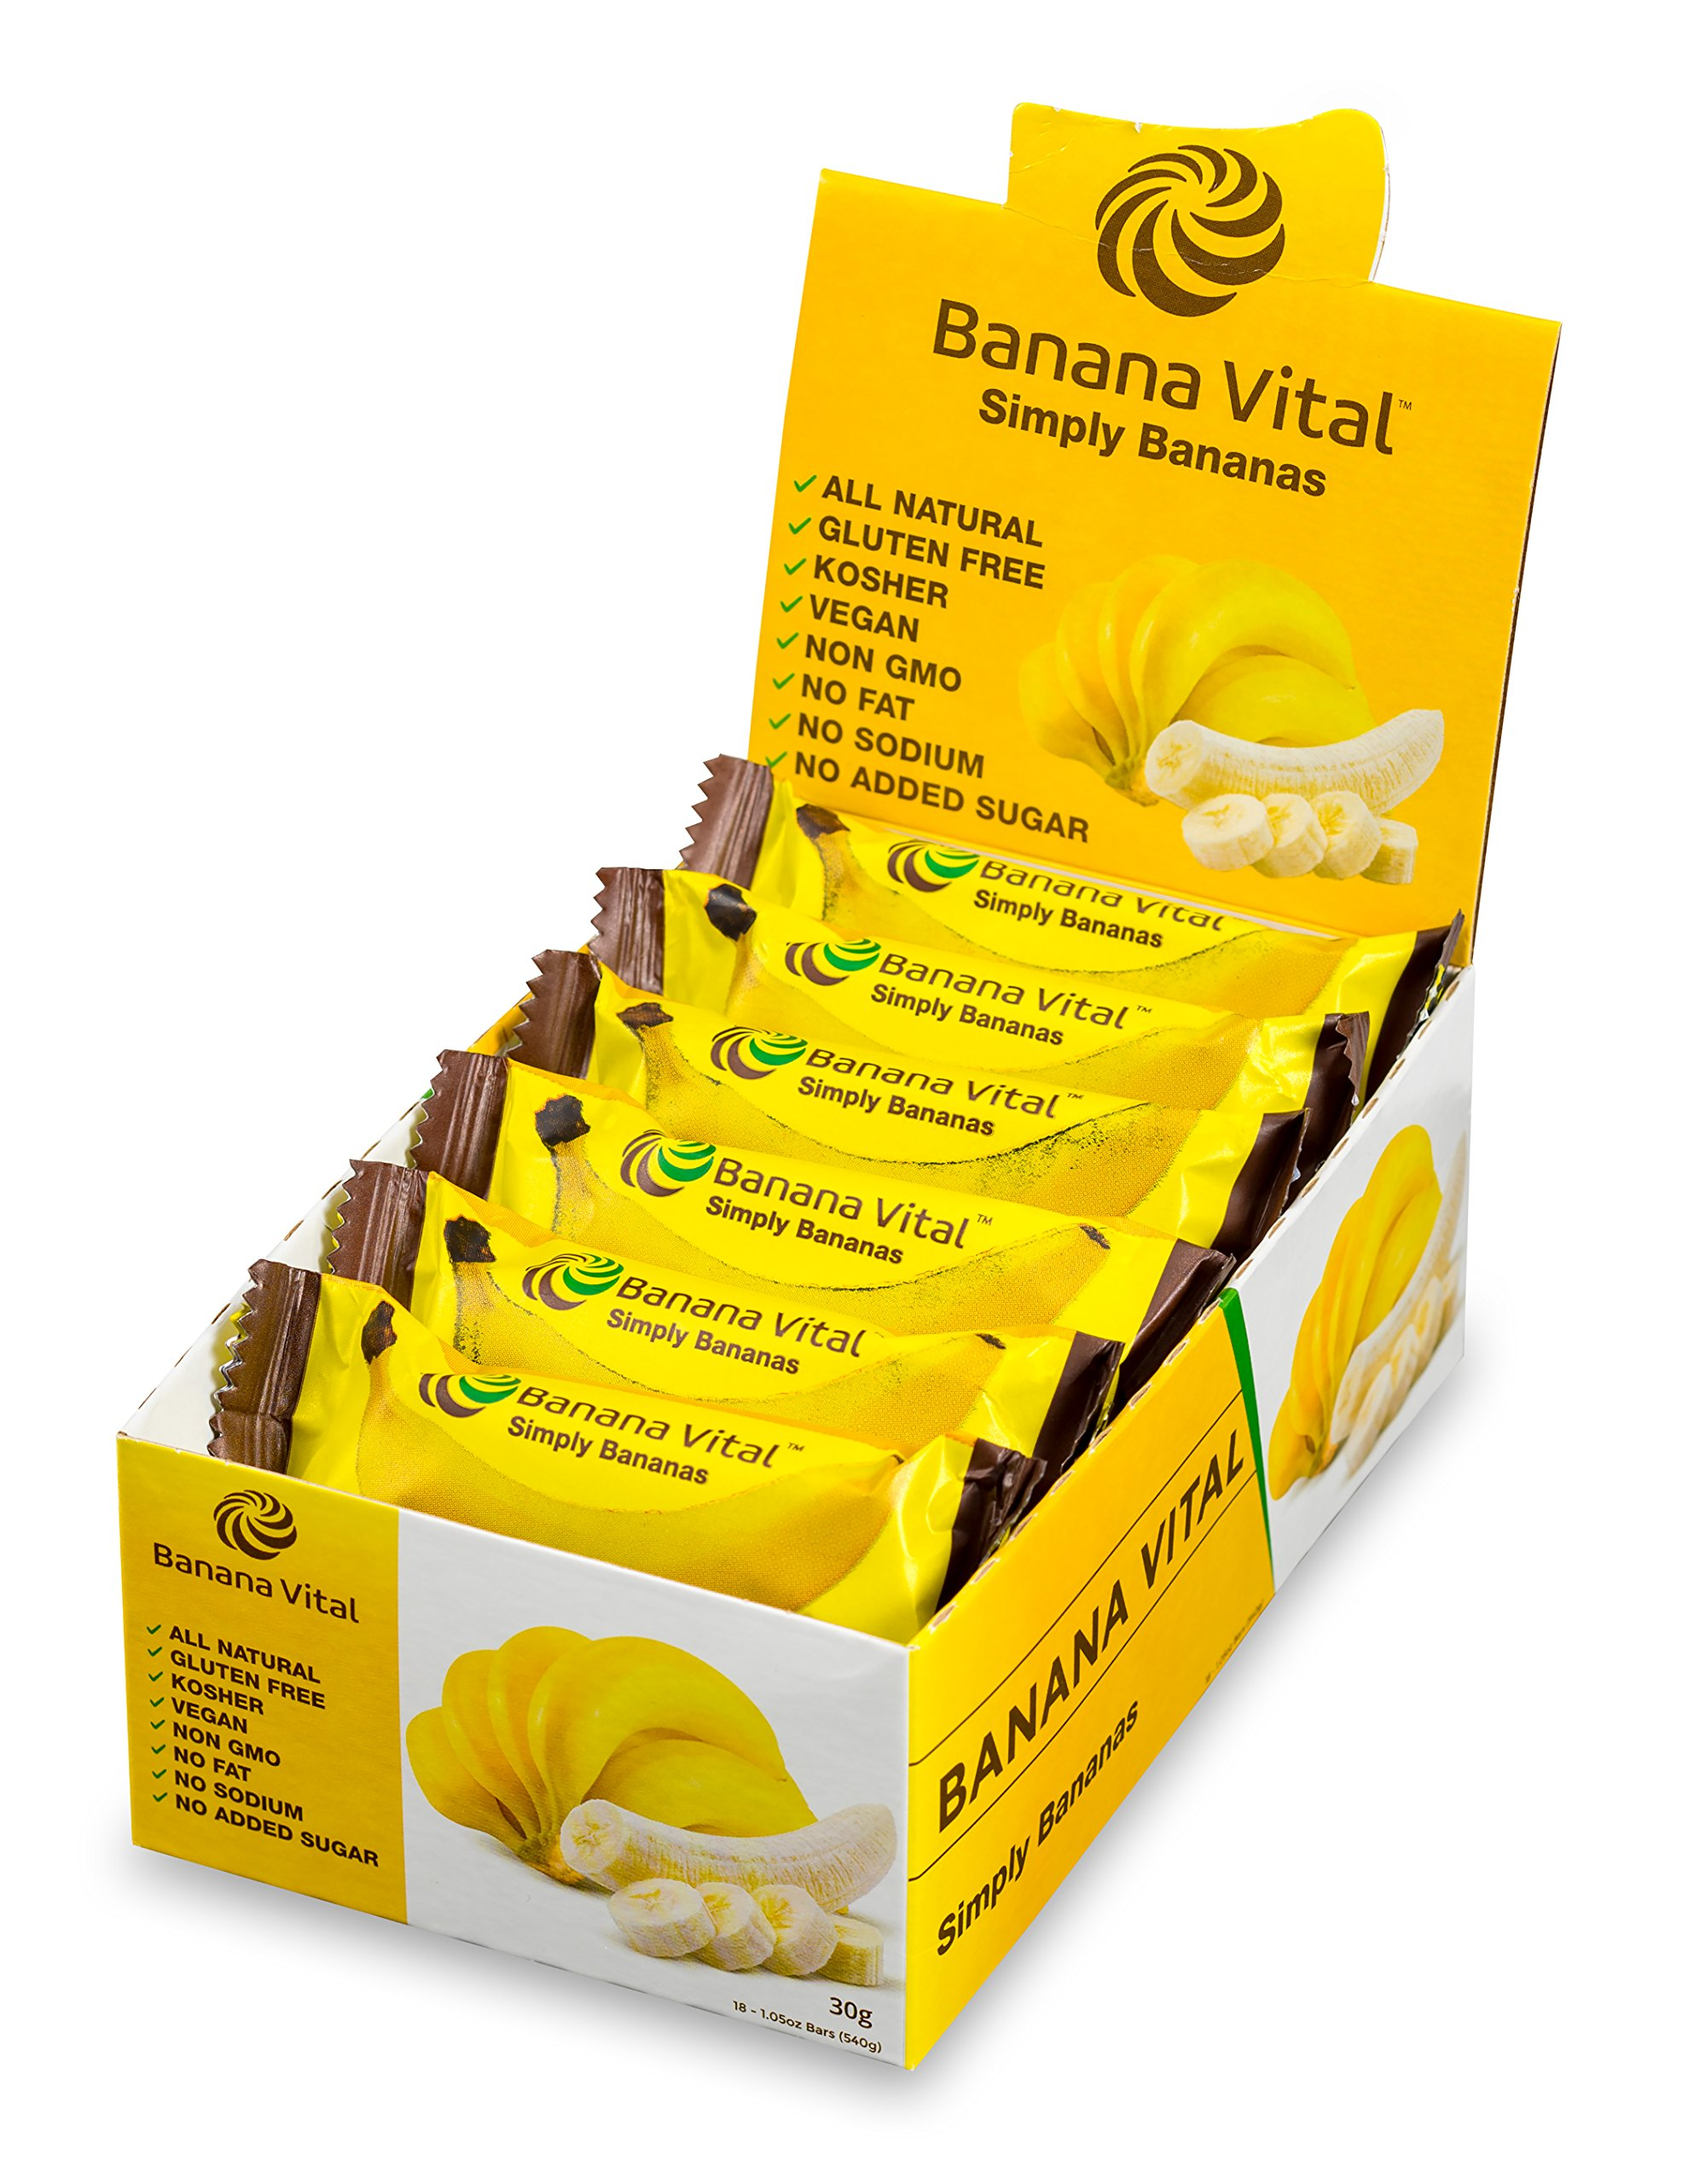 Banana Vital Bar - Simply Bananas - All-Natural Energy Bar Healthy Snack Gluten-Free Non-GMO Allergen-Free Low Calories Vegan Kosher Paleo Fat-Free No Preservatives No Added Sugar by Banana Vital, LLC